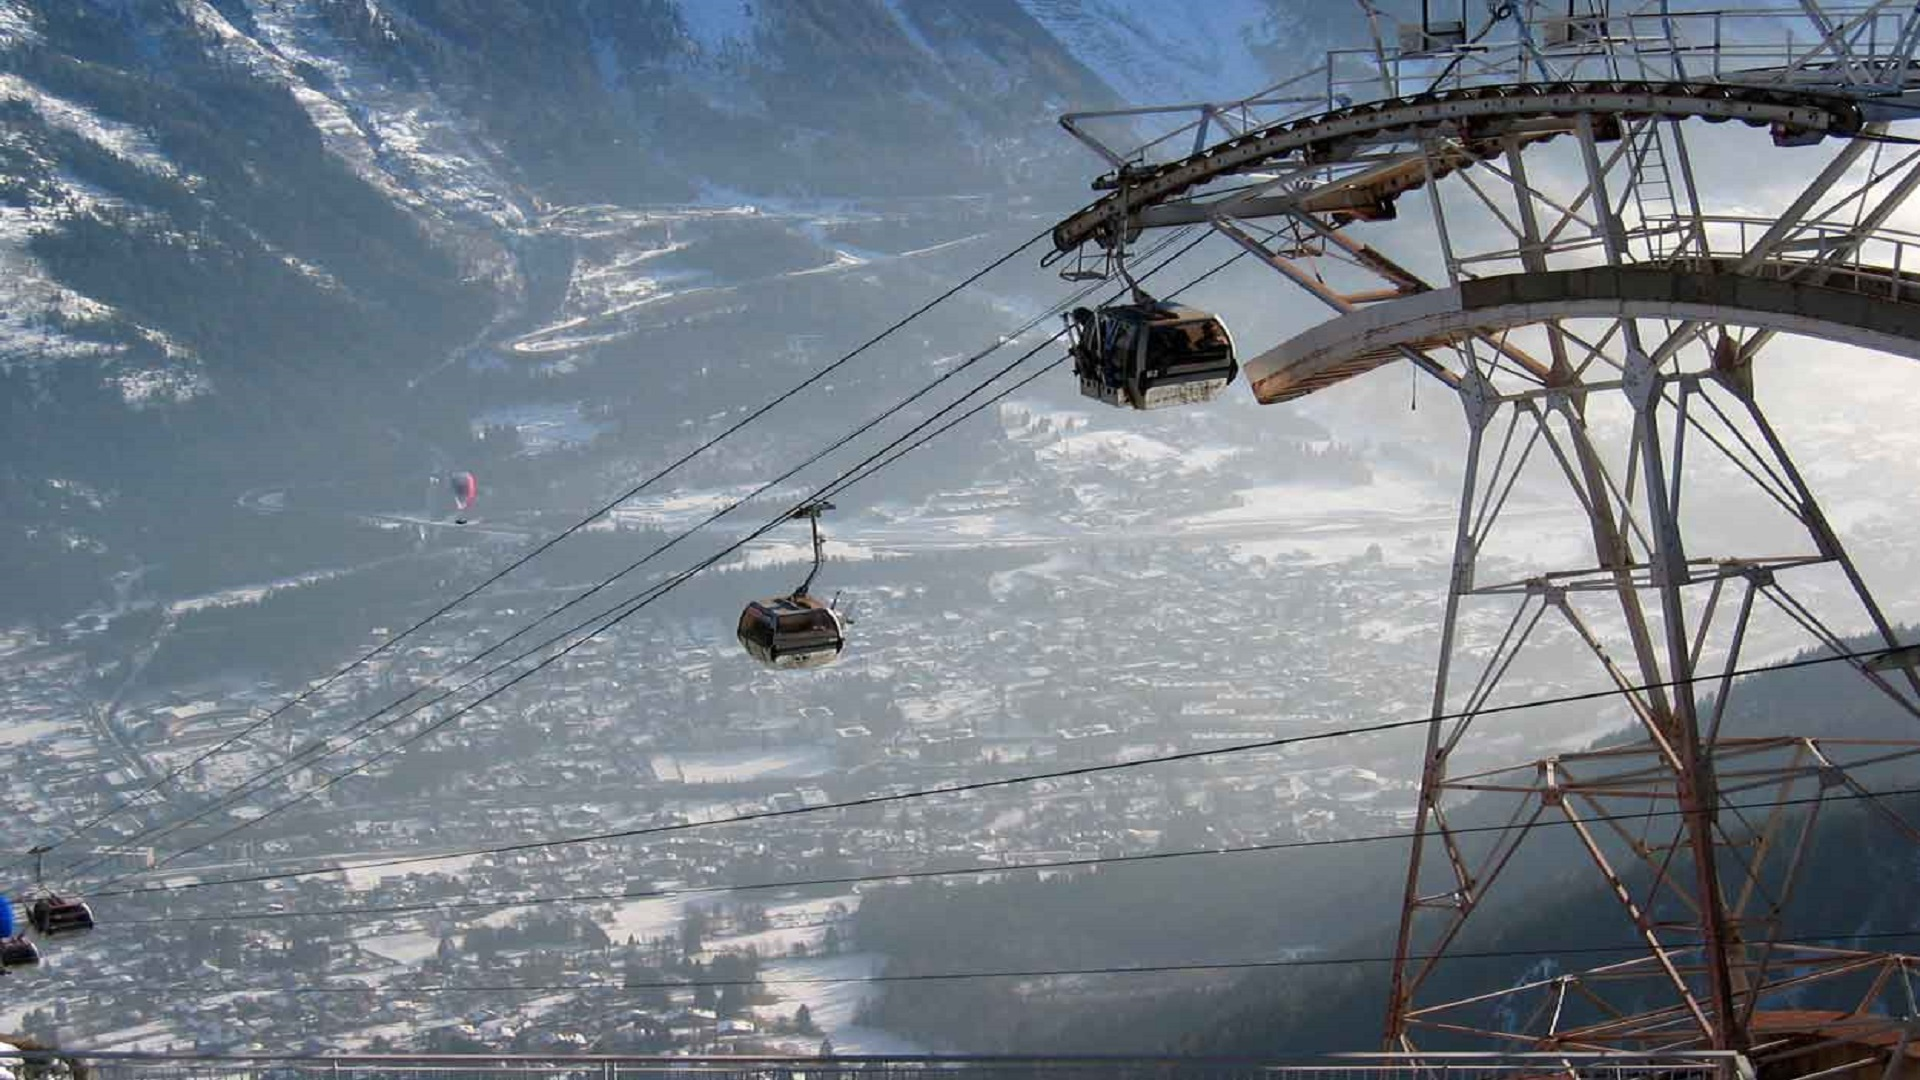 Himachal Pradesh to get two ropeways